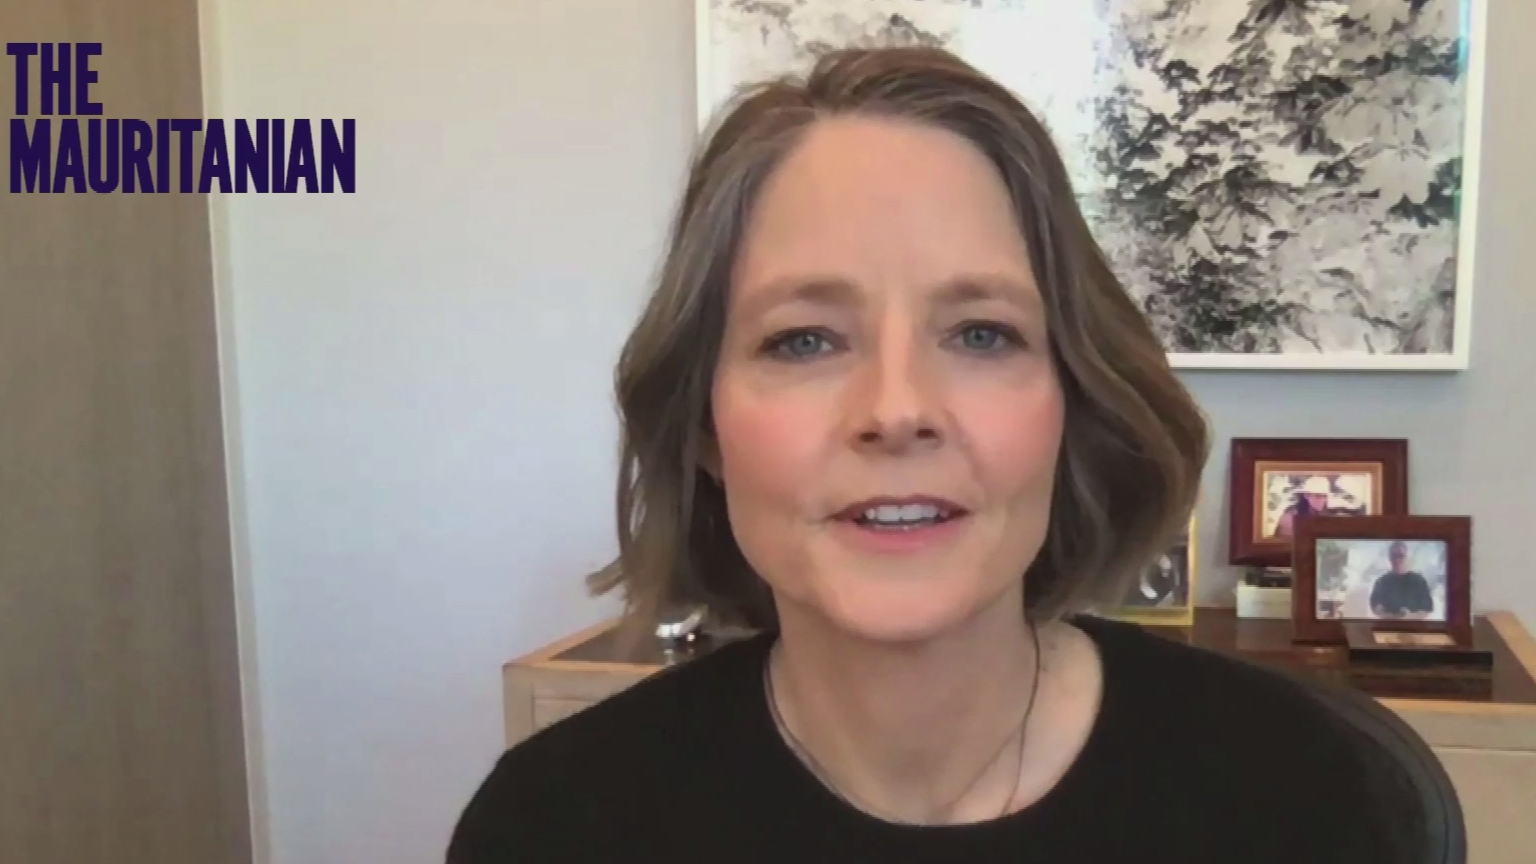 Jodie Foster's new film 'needed to be made'